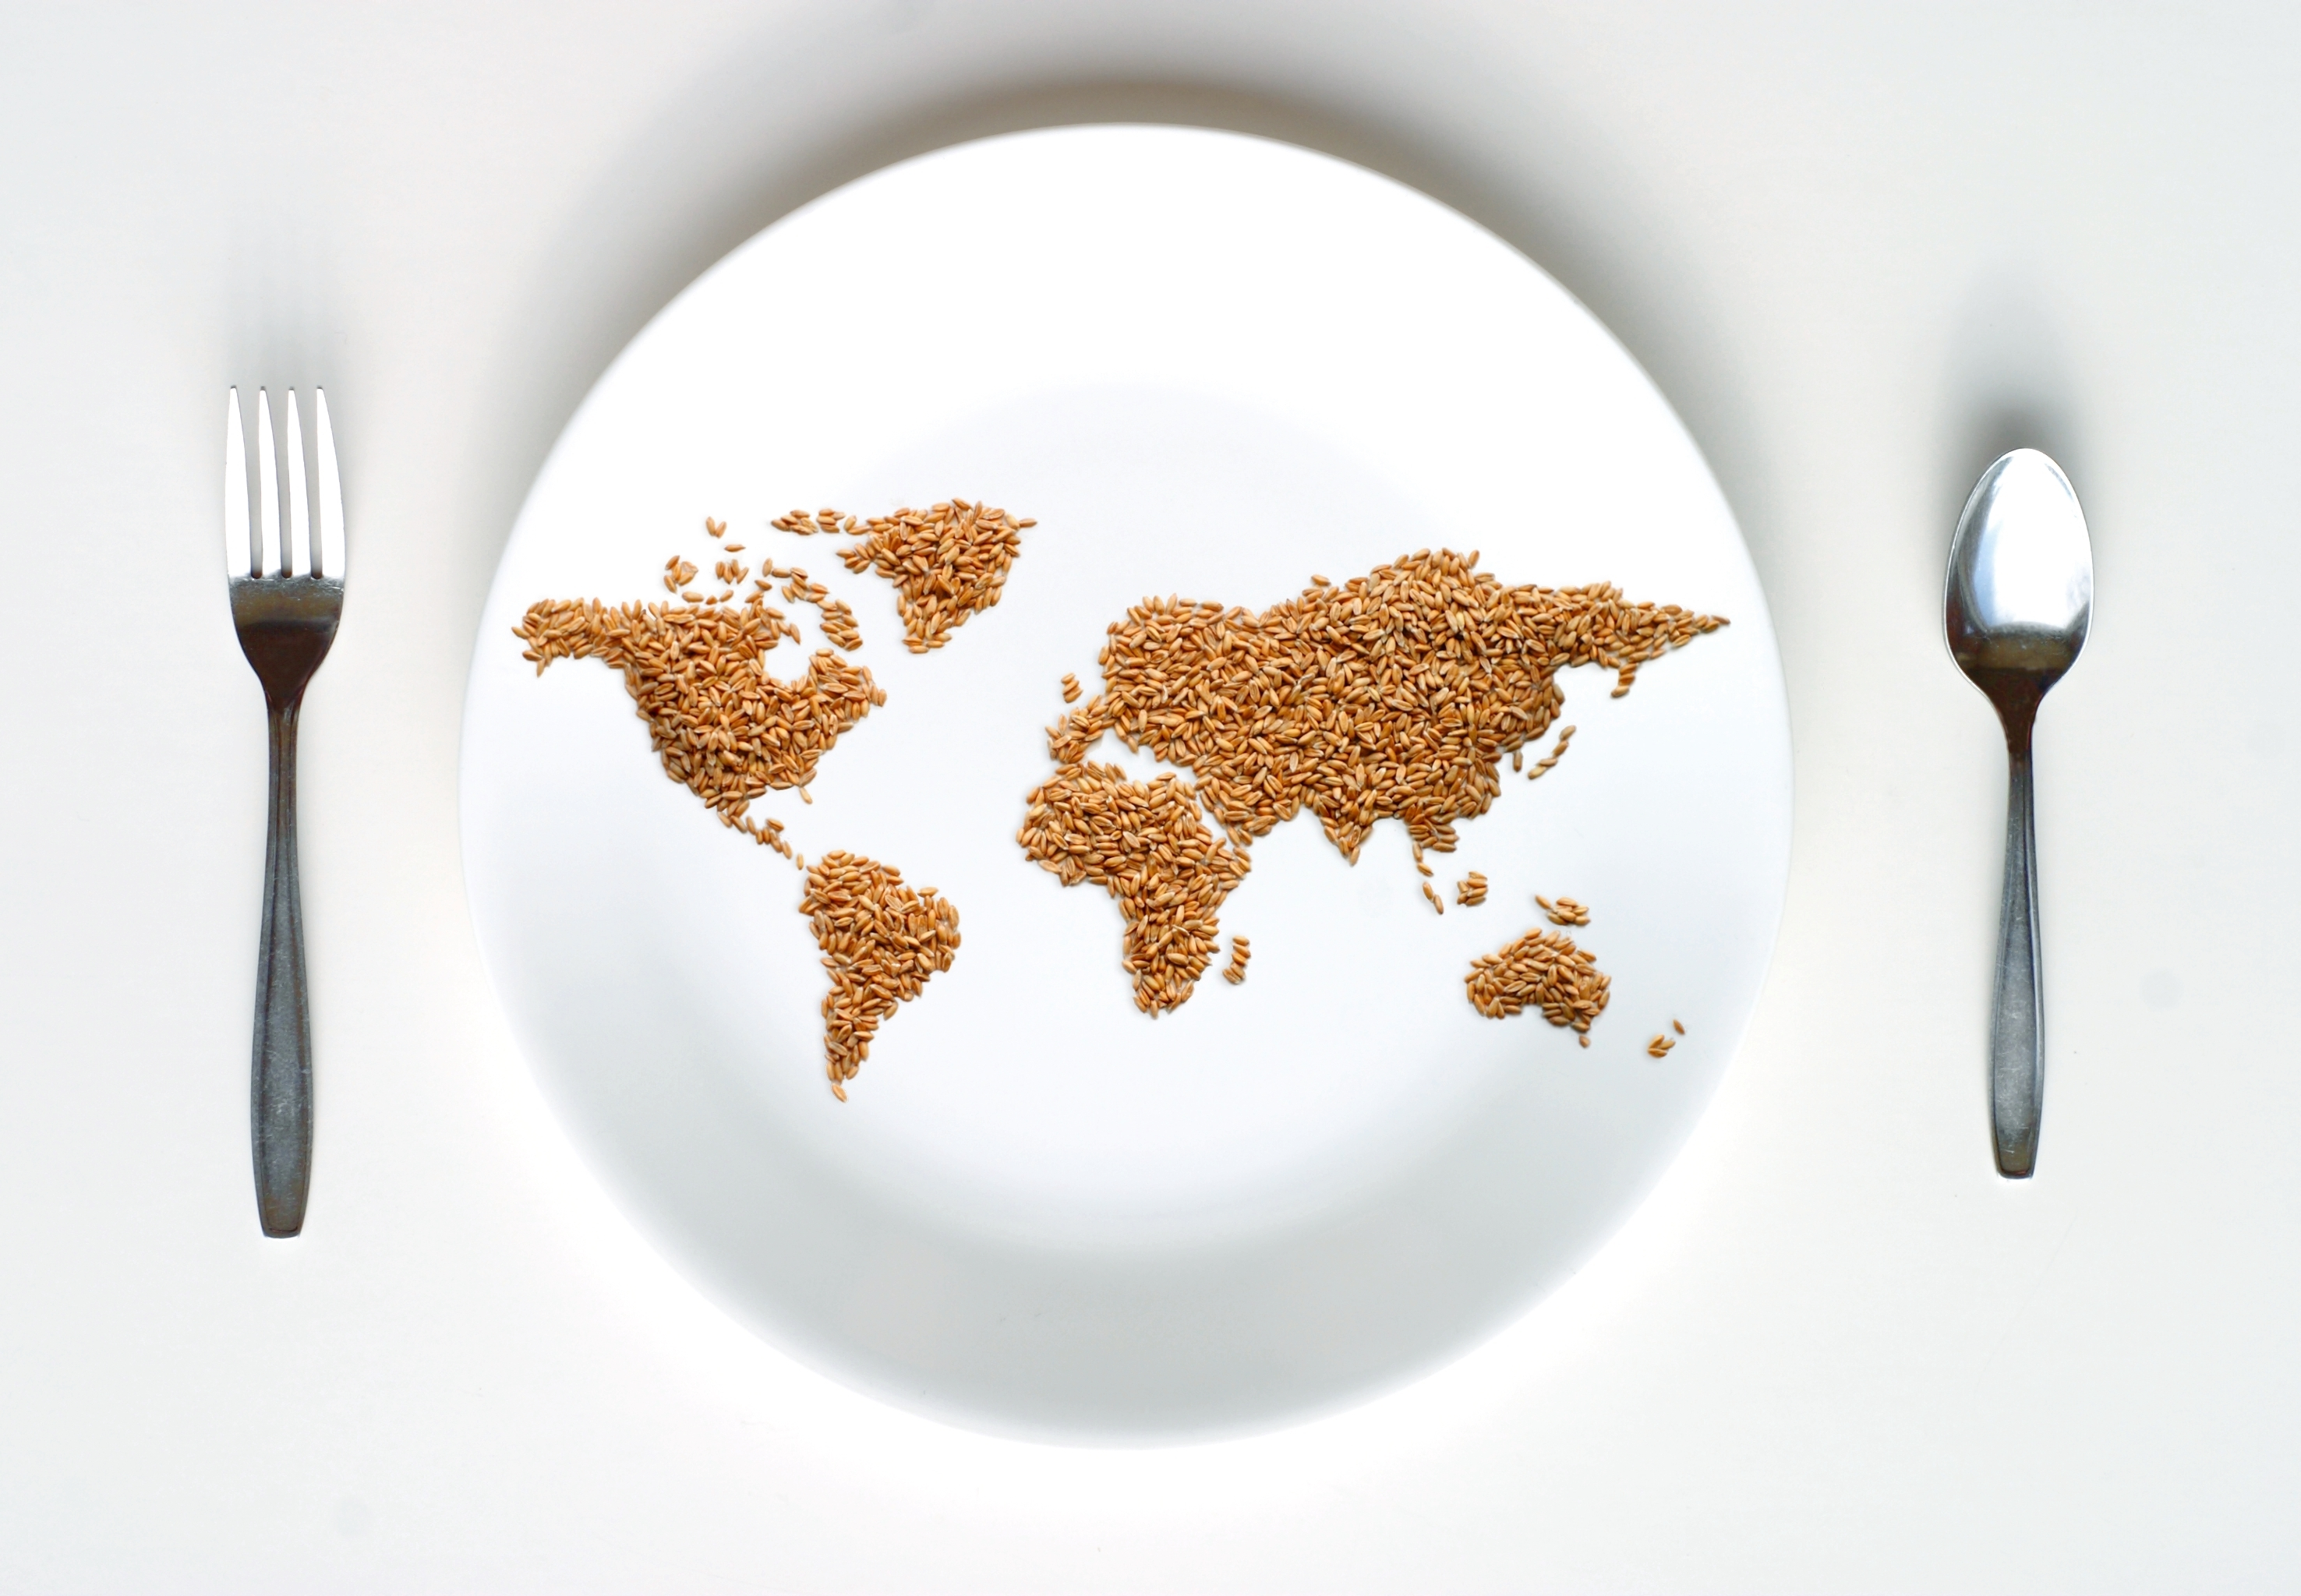 Together we can stop hunger world food program usa the global food supply consistently produces enough food to feed every single person in the world and yet nearly 1 billion people are undernourished and gumiabroncs Choice Image